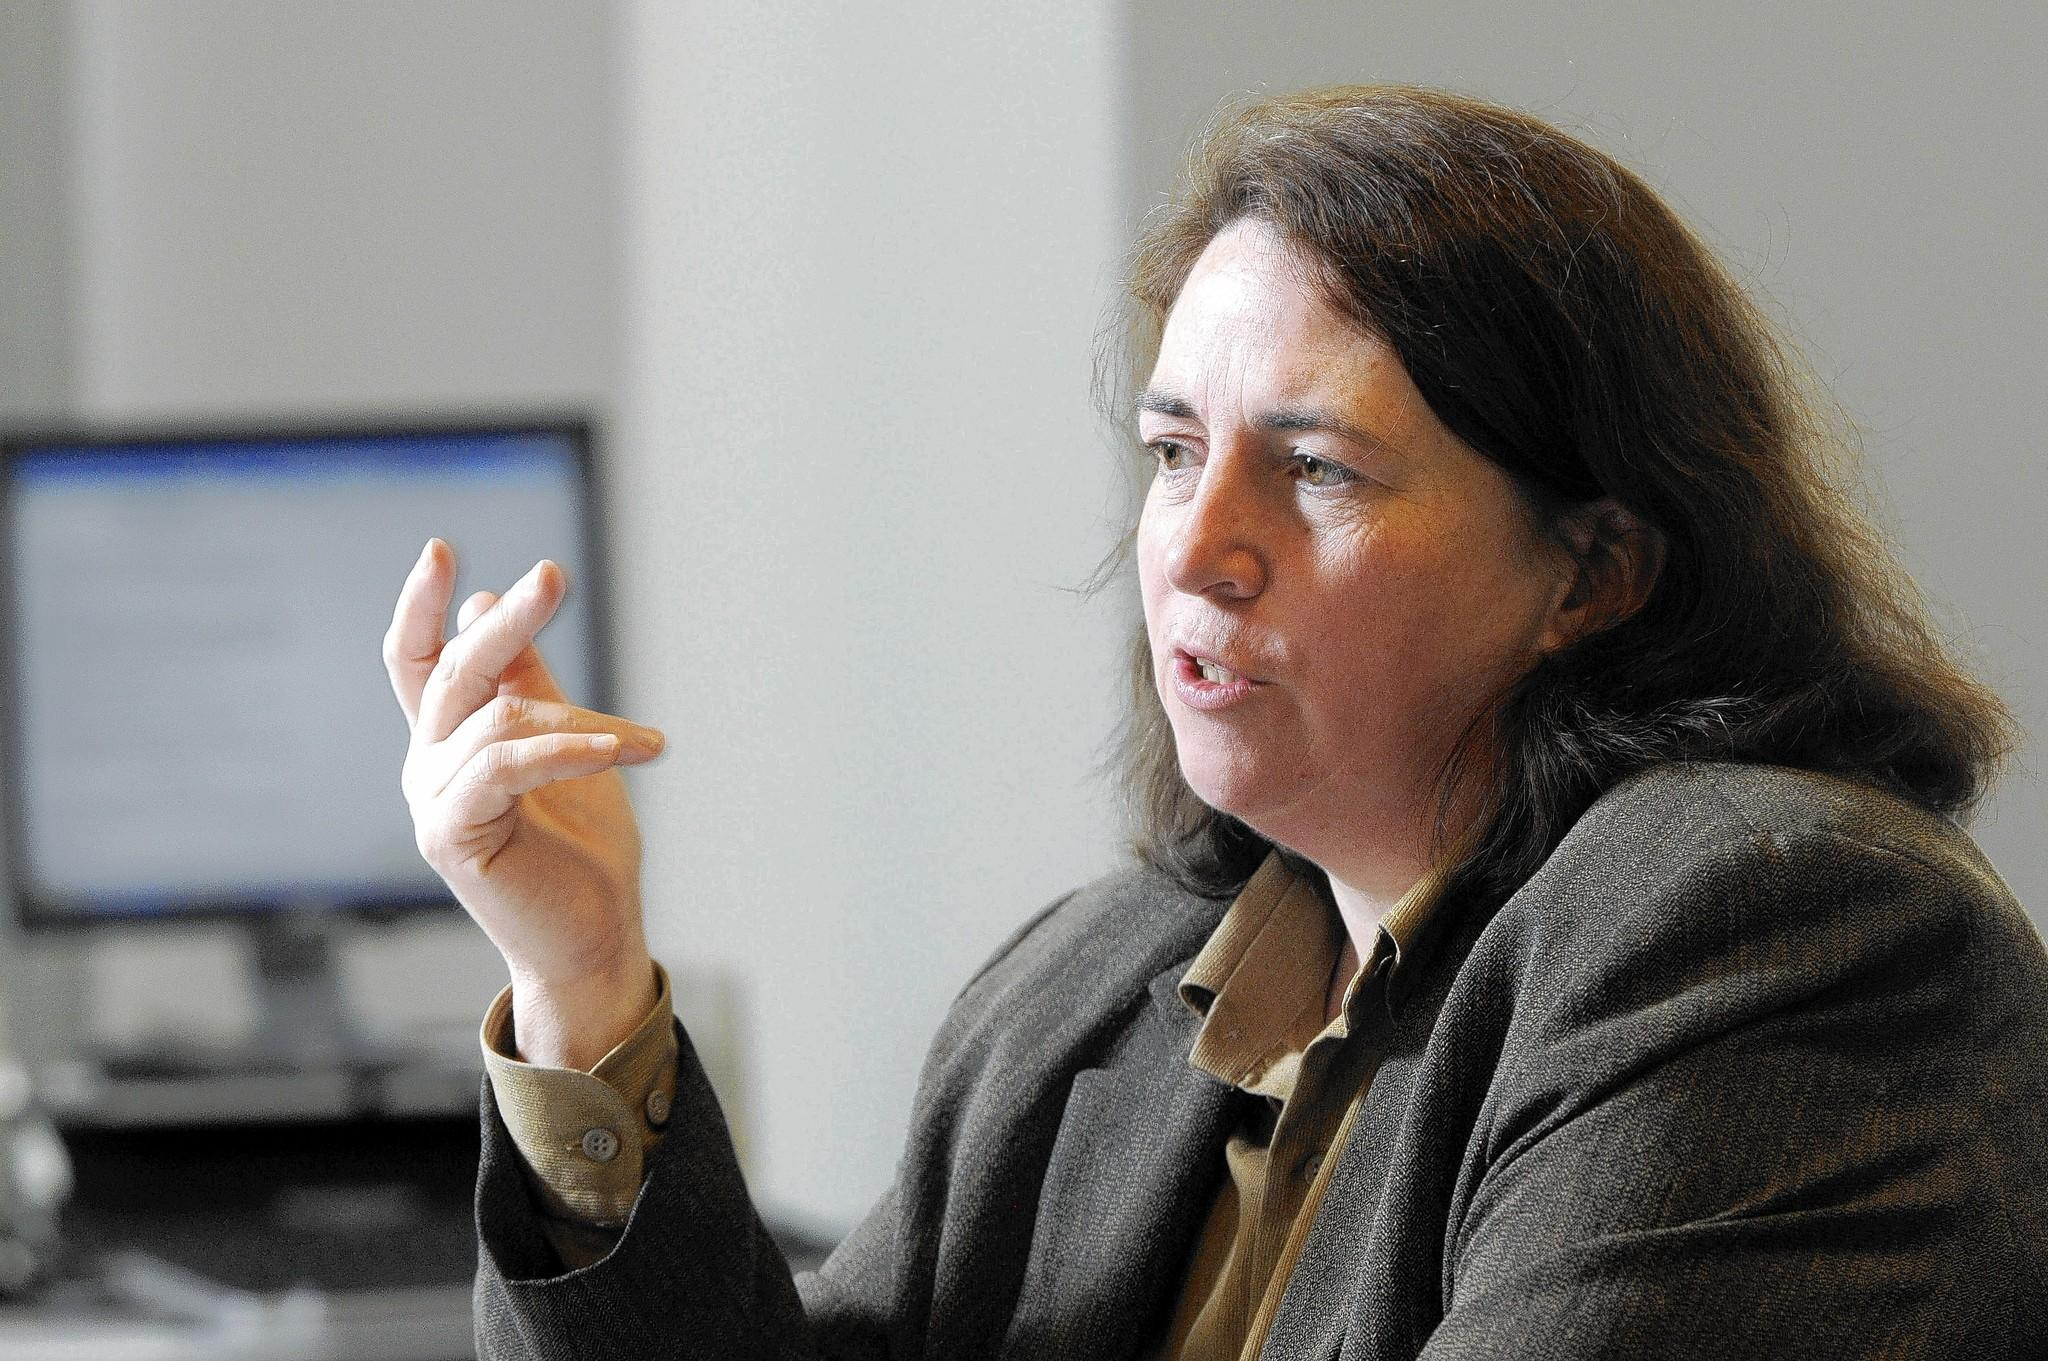 Terry Mutchler, head of the Pennsylvania Office of Open Records, is a thorn in the side of state officials who want to keep the public in the dark.